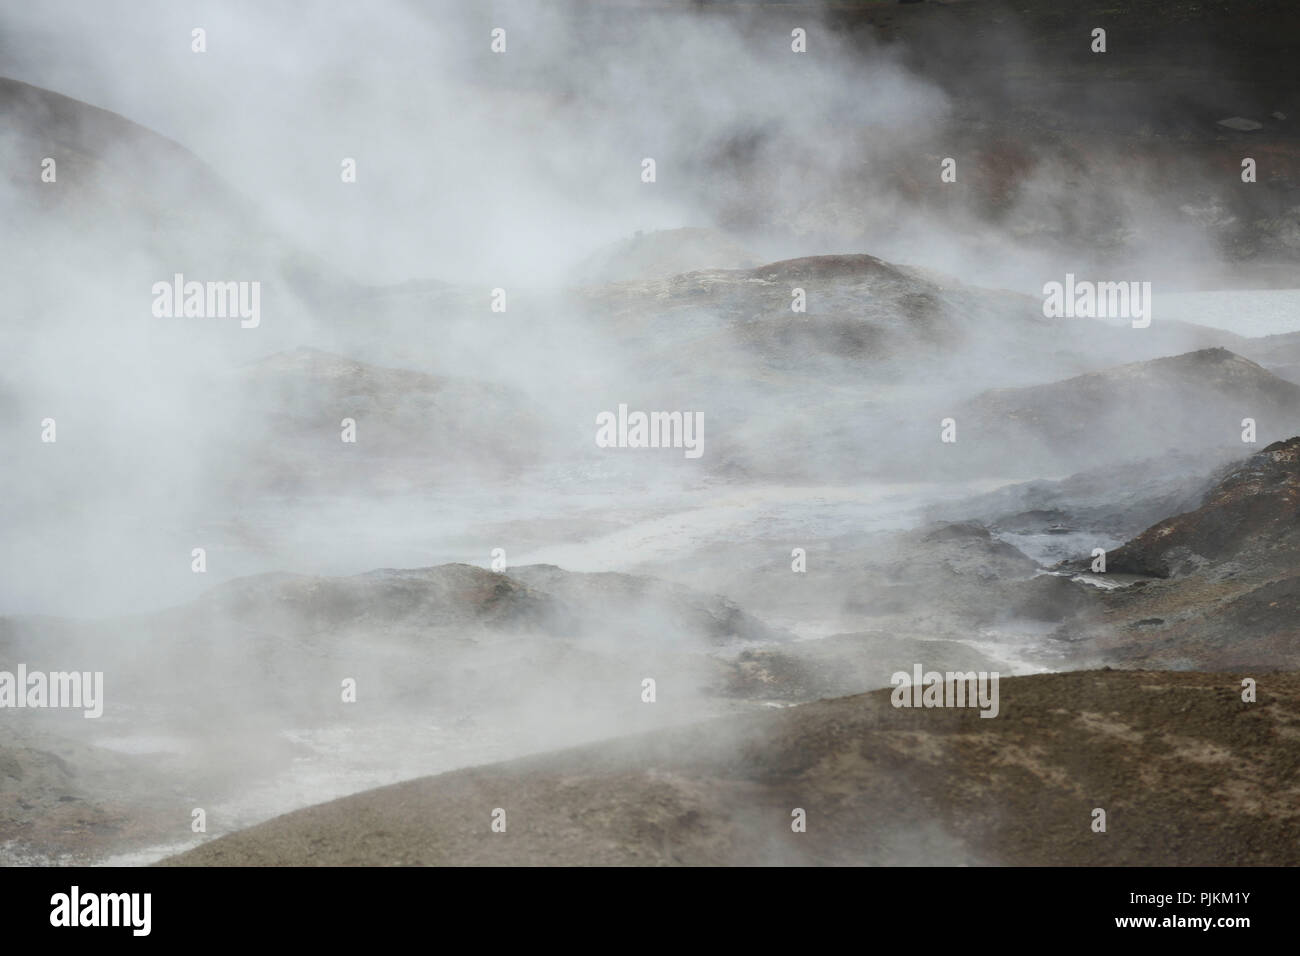 Iceland, hot springs, steam, high temperature zone, backlight Stock Photo